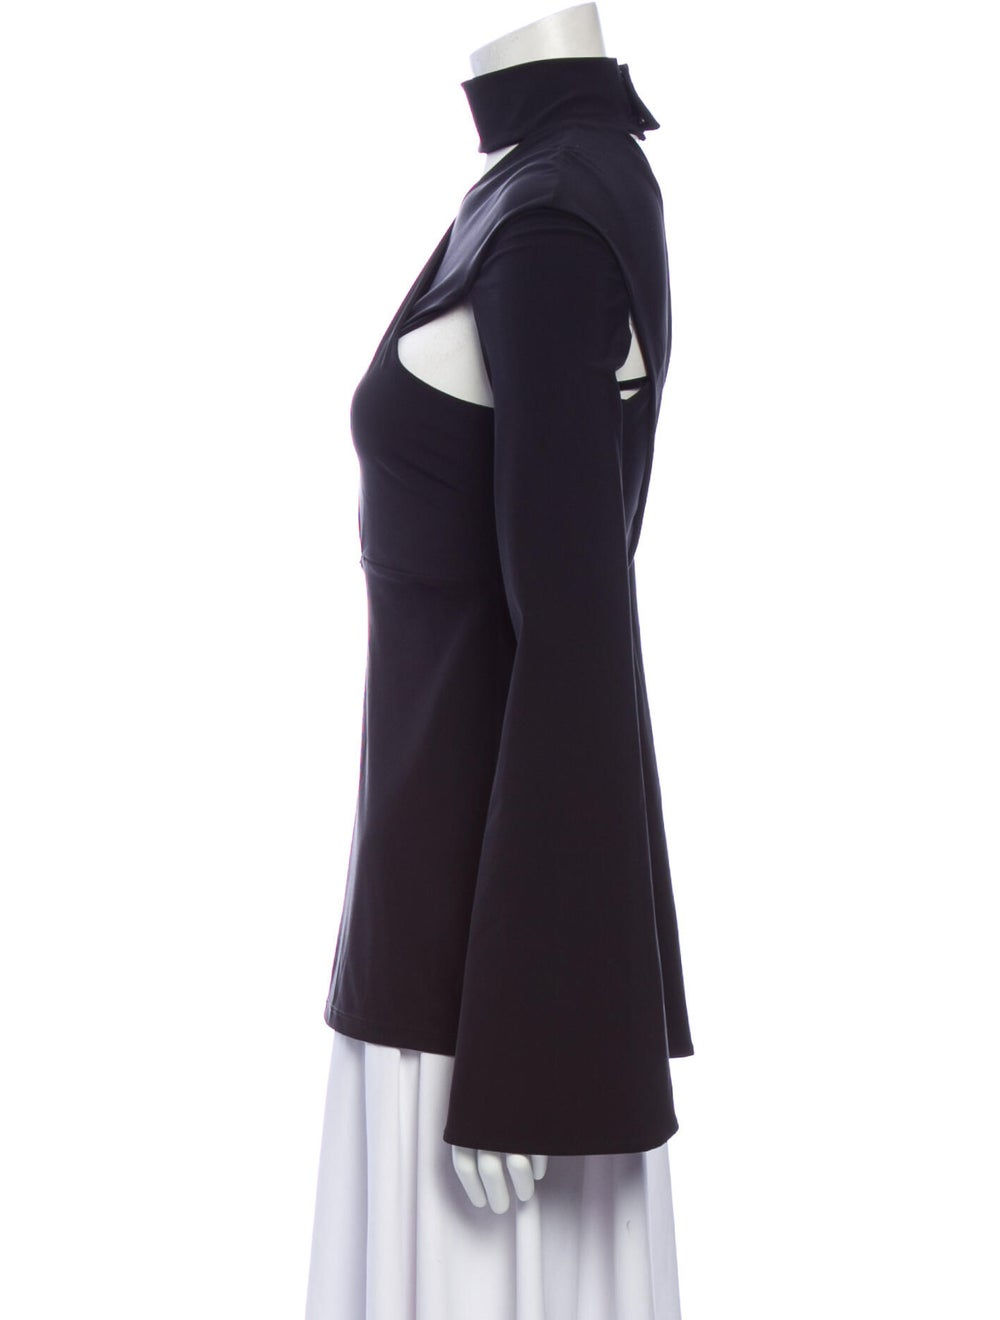 Beaufille Mock Neck Long Sleeve Top w/ Tags Black - image 2